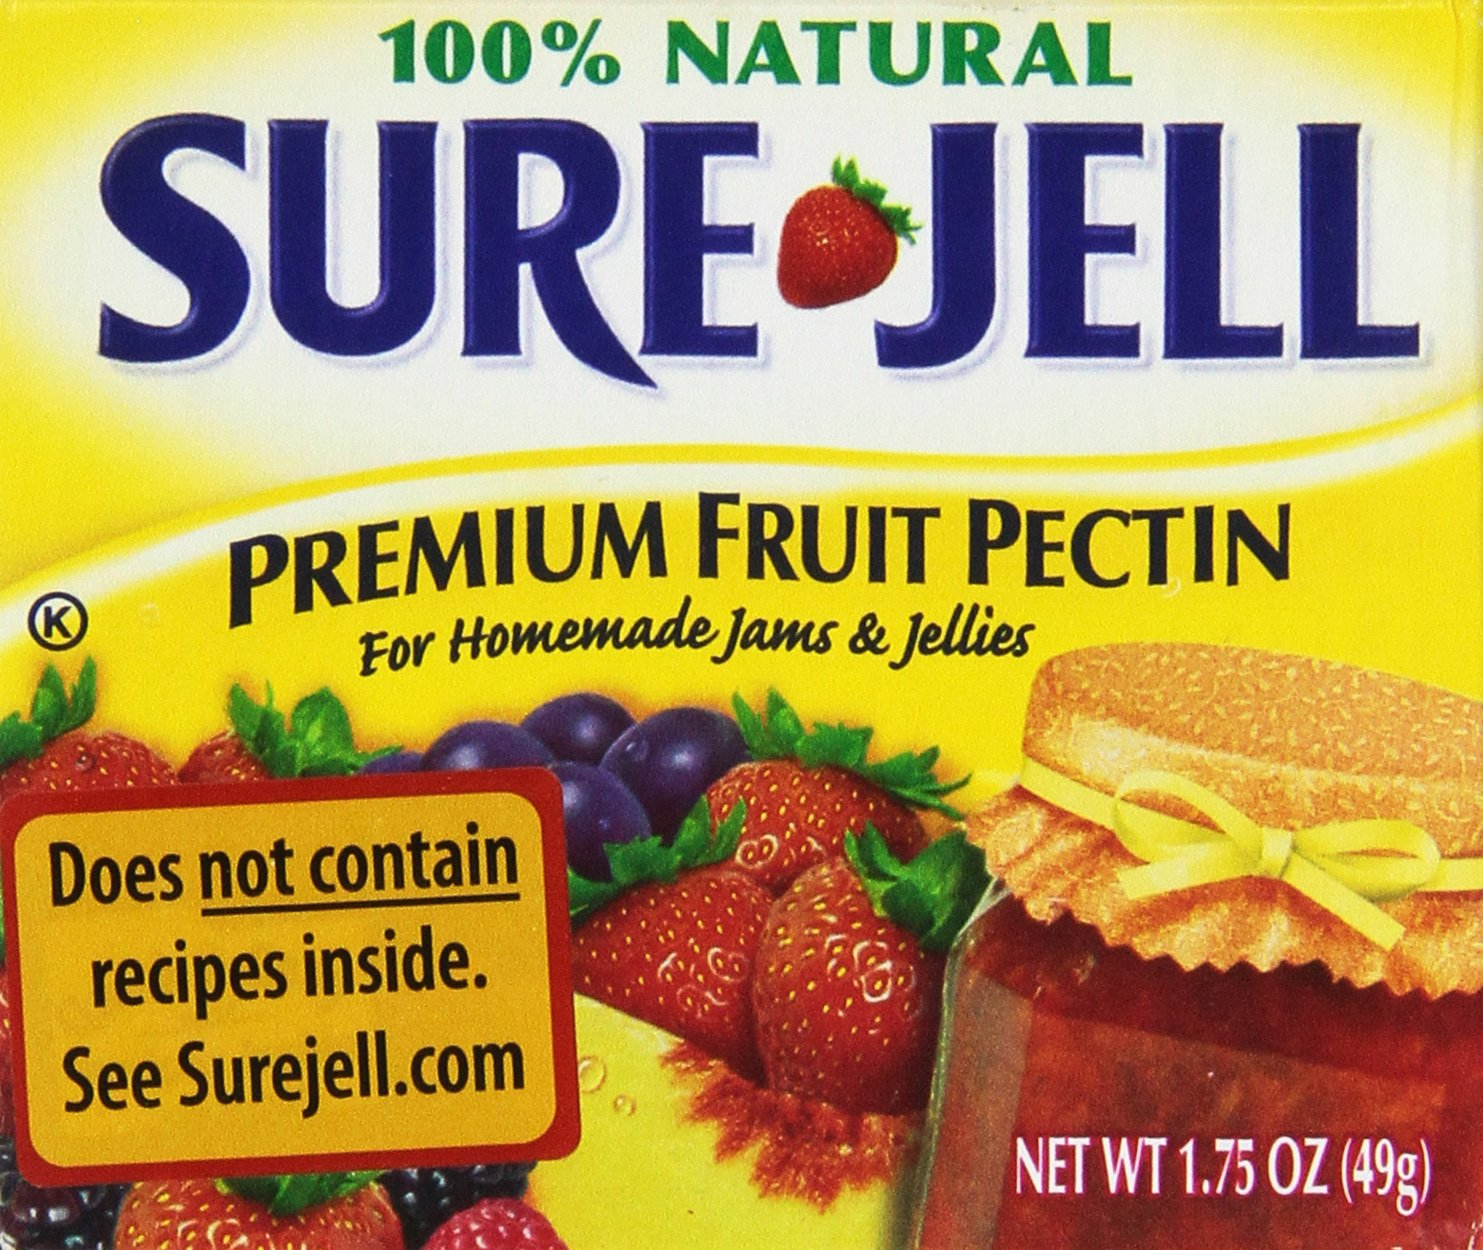 PREMIUM FRIUT PECTIN FOR HOMEMADE JAMS AND JELLIES by Sure Jell - 100% Natural - 6 of 1.75 oz boxes